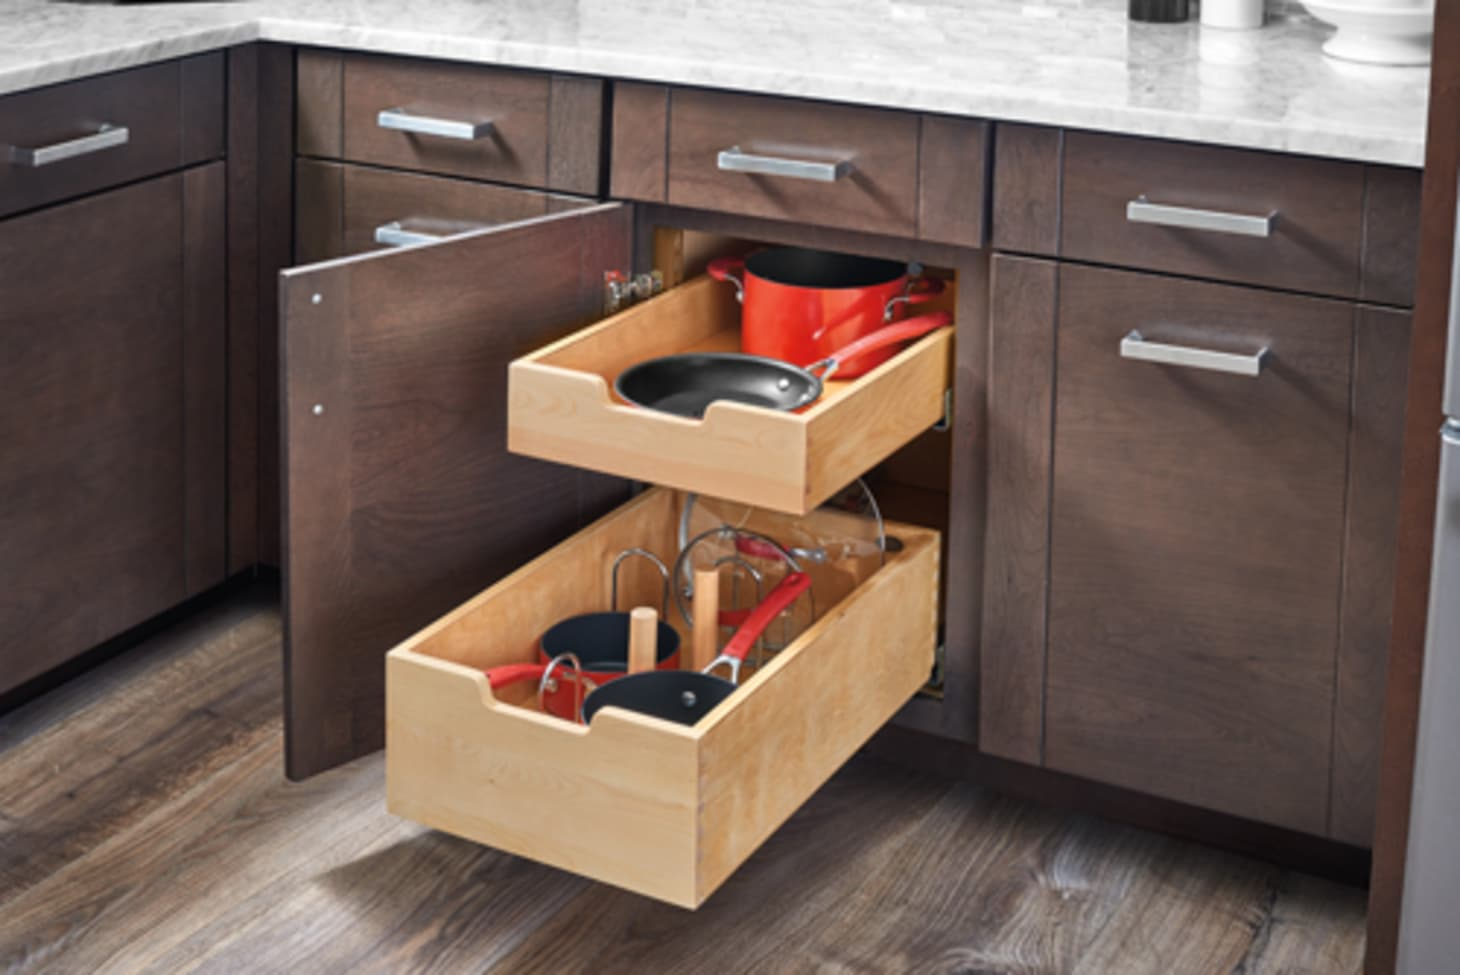 The Pros to Having Drawers Instead of Lower Cabinets | Kitchn